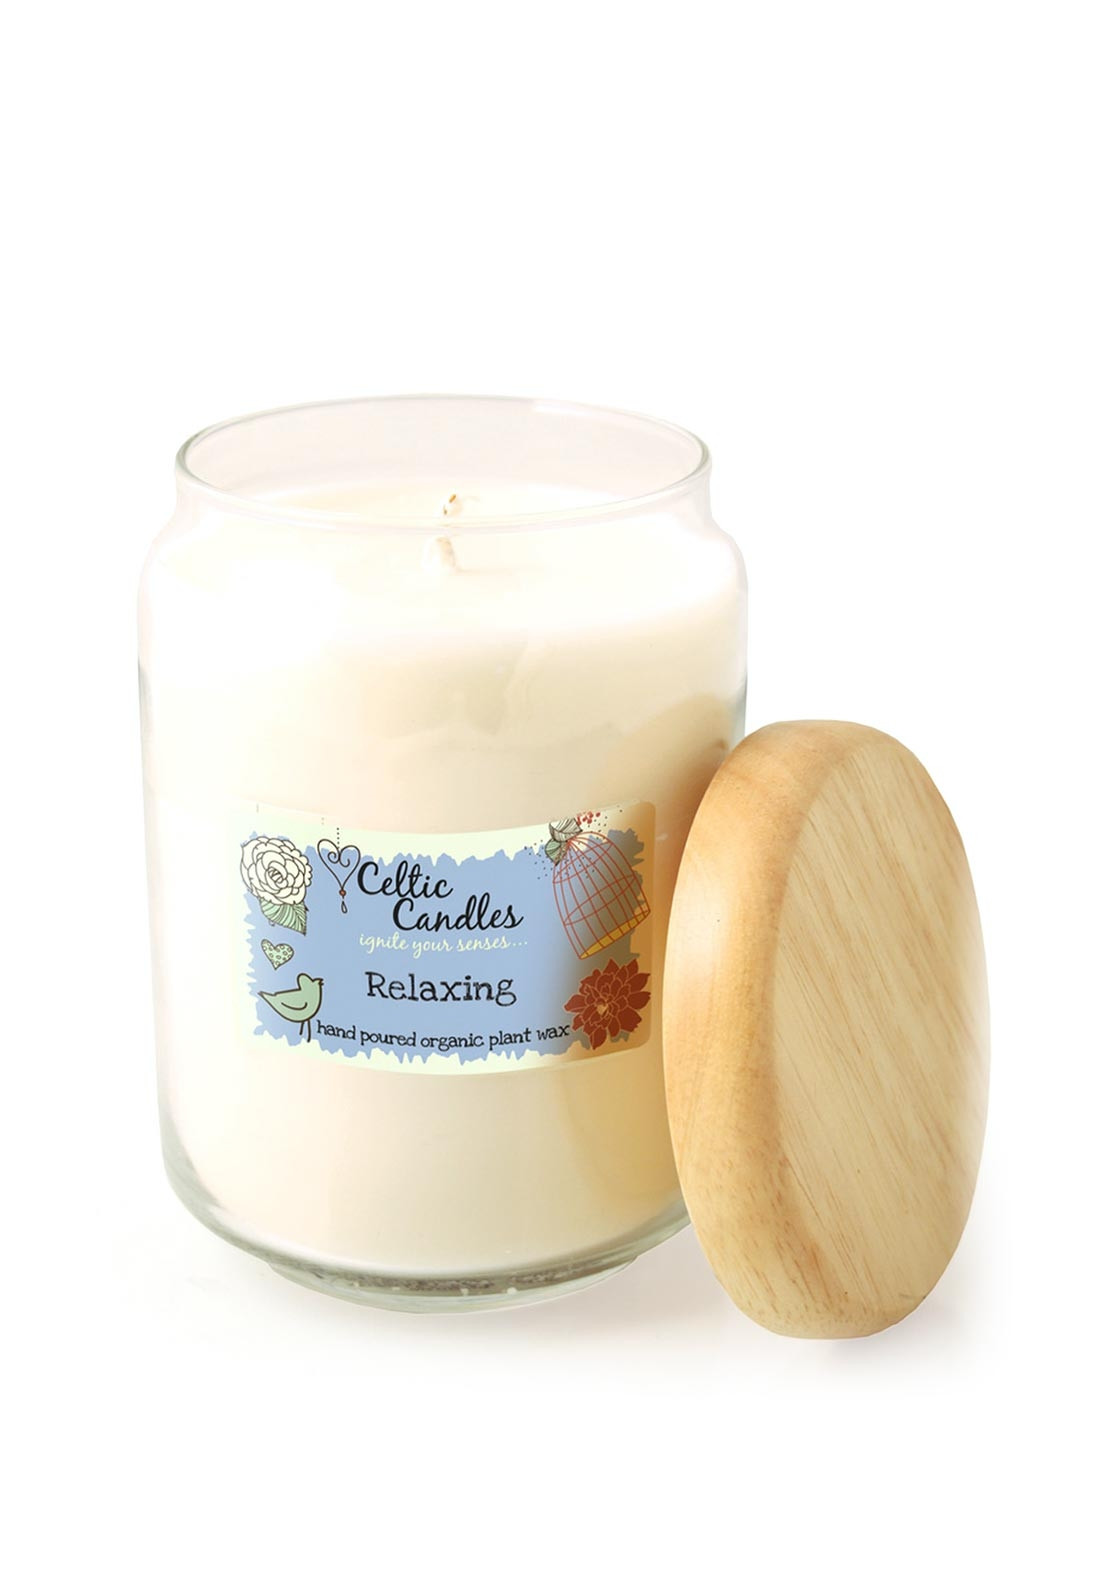 Celtic Candles Large Relaxing Candle Jar, 650ml